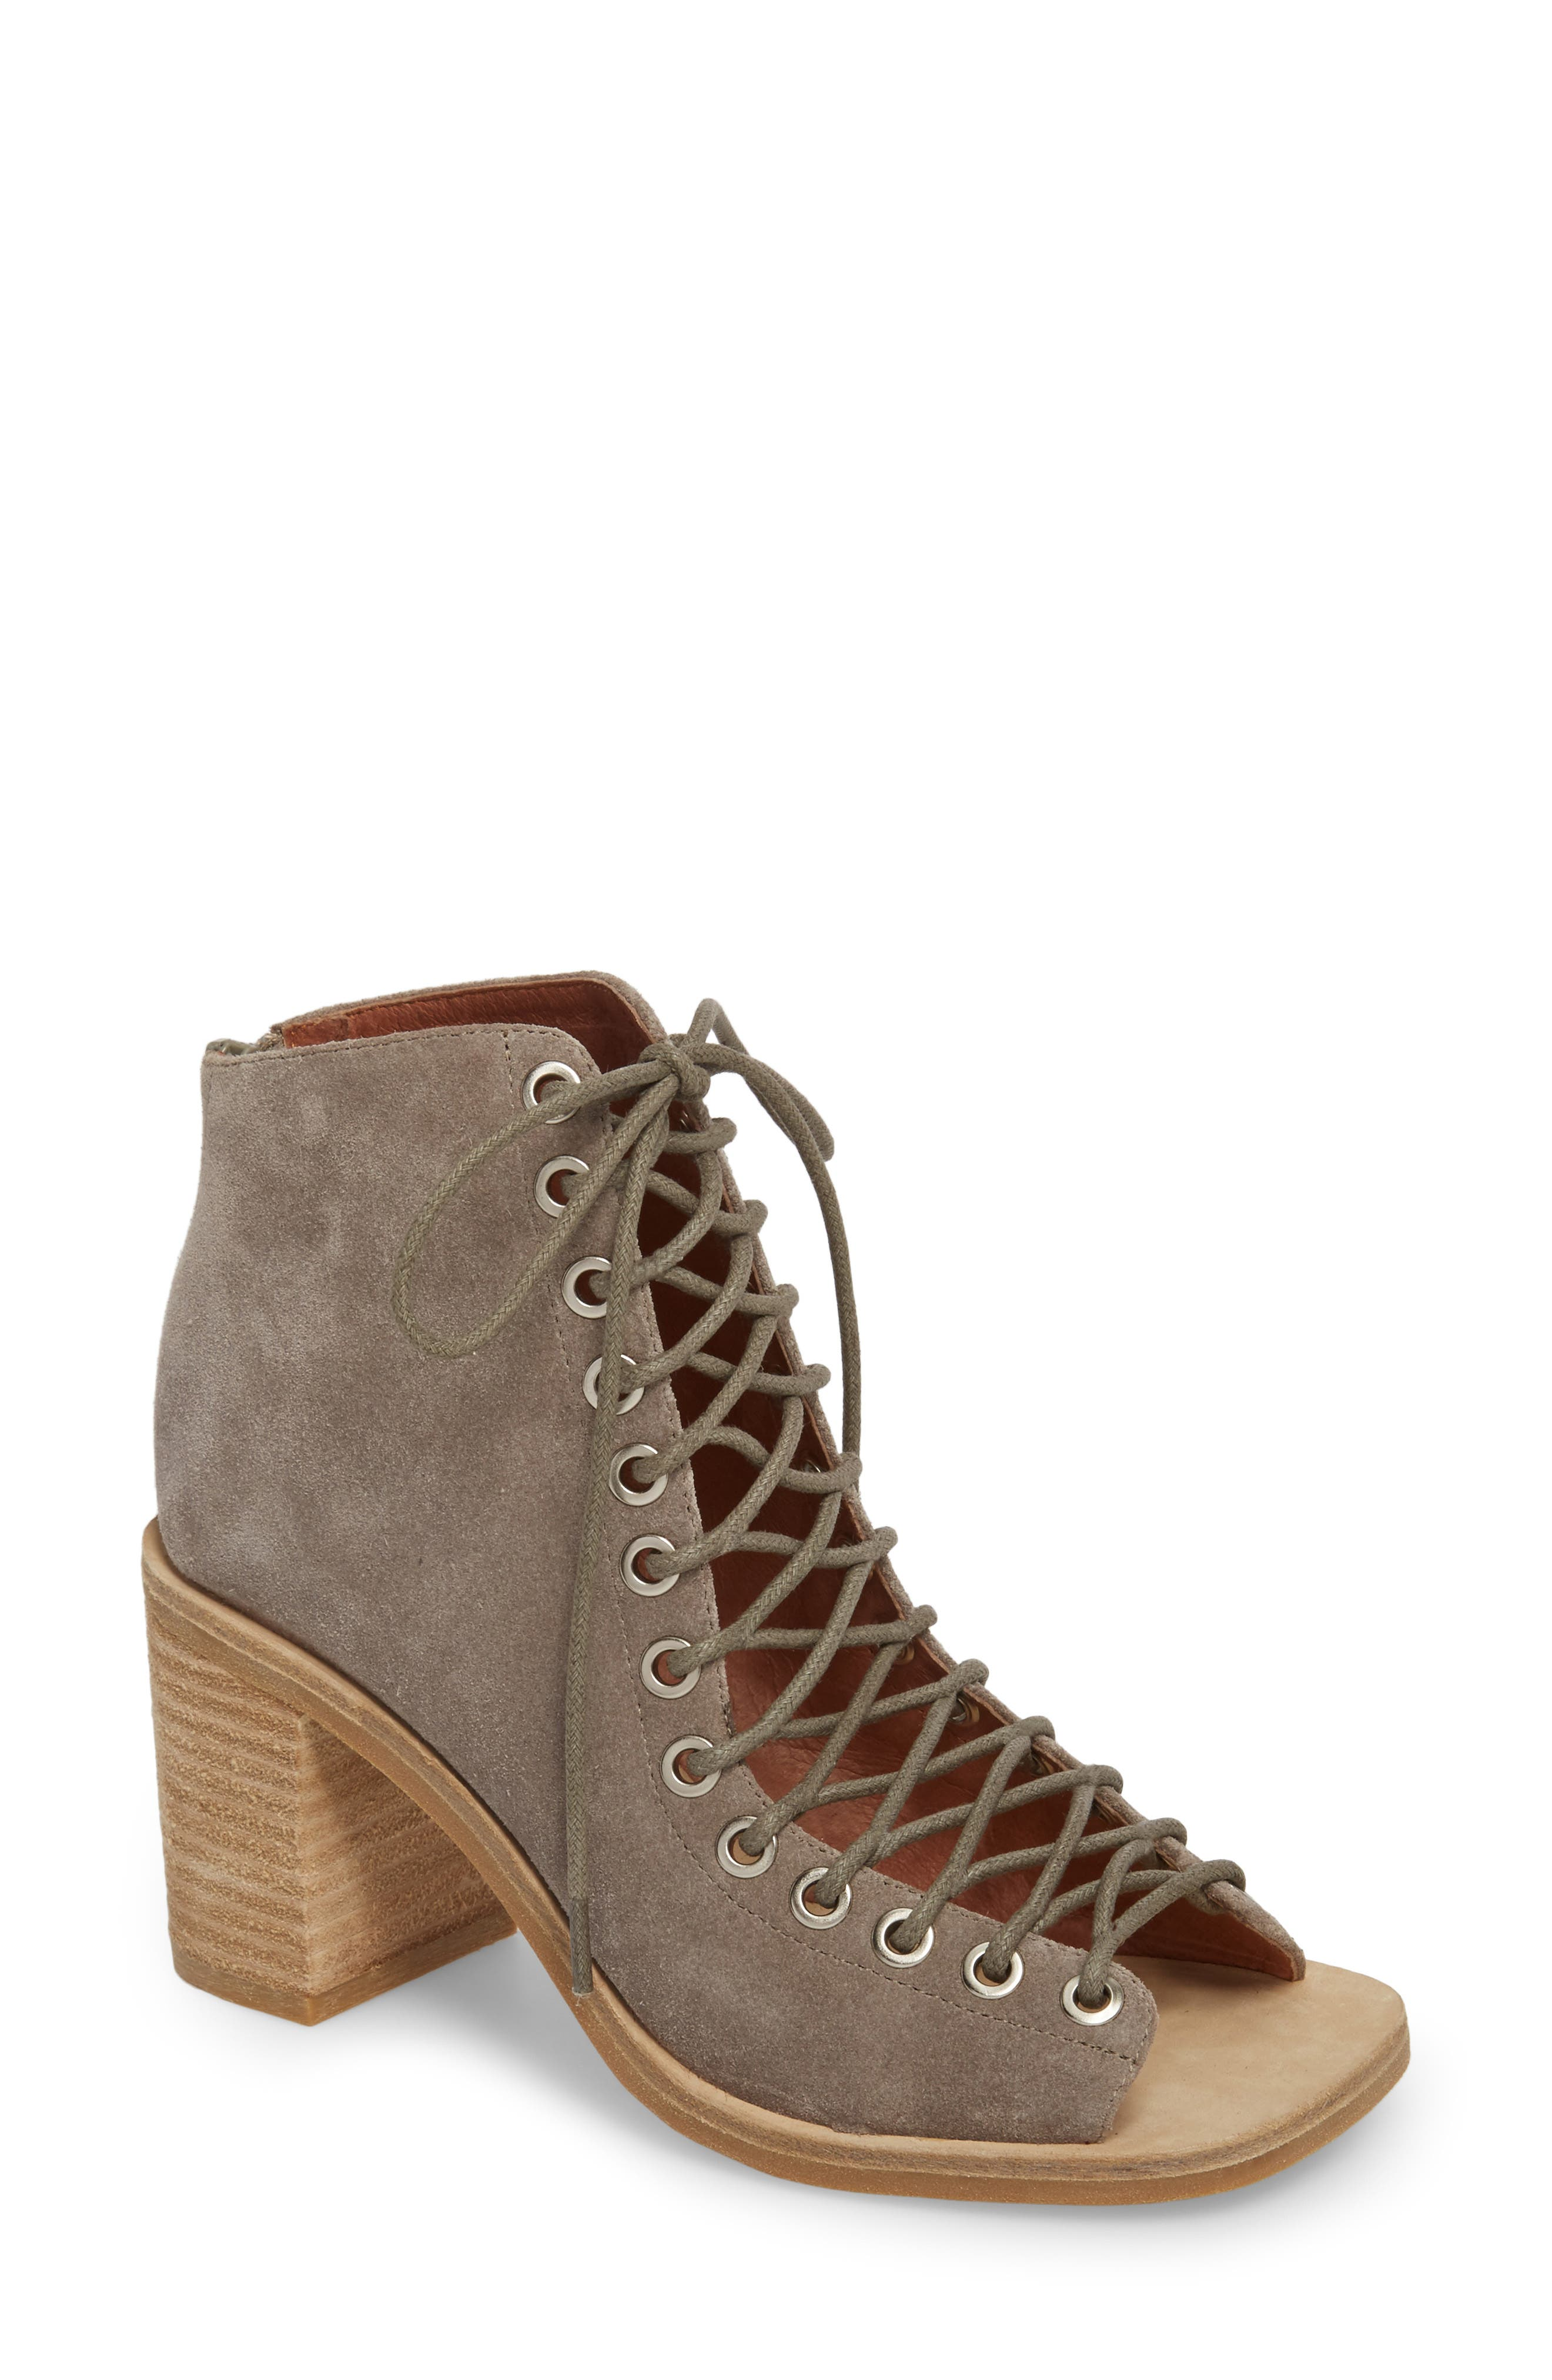 Cors Bootie,                             Main thumbnail 1, color,                             TAUPE SUEDE